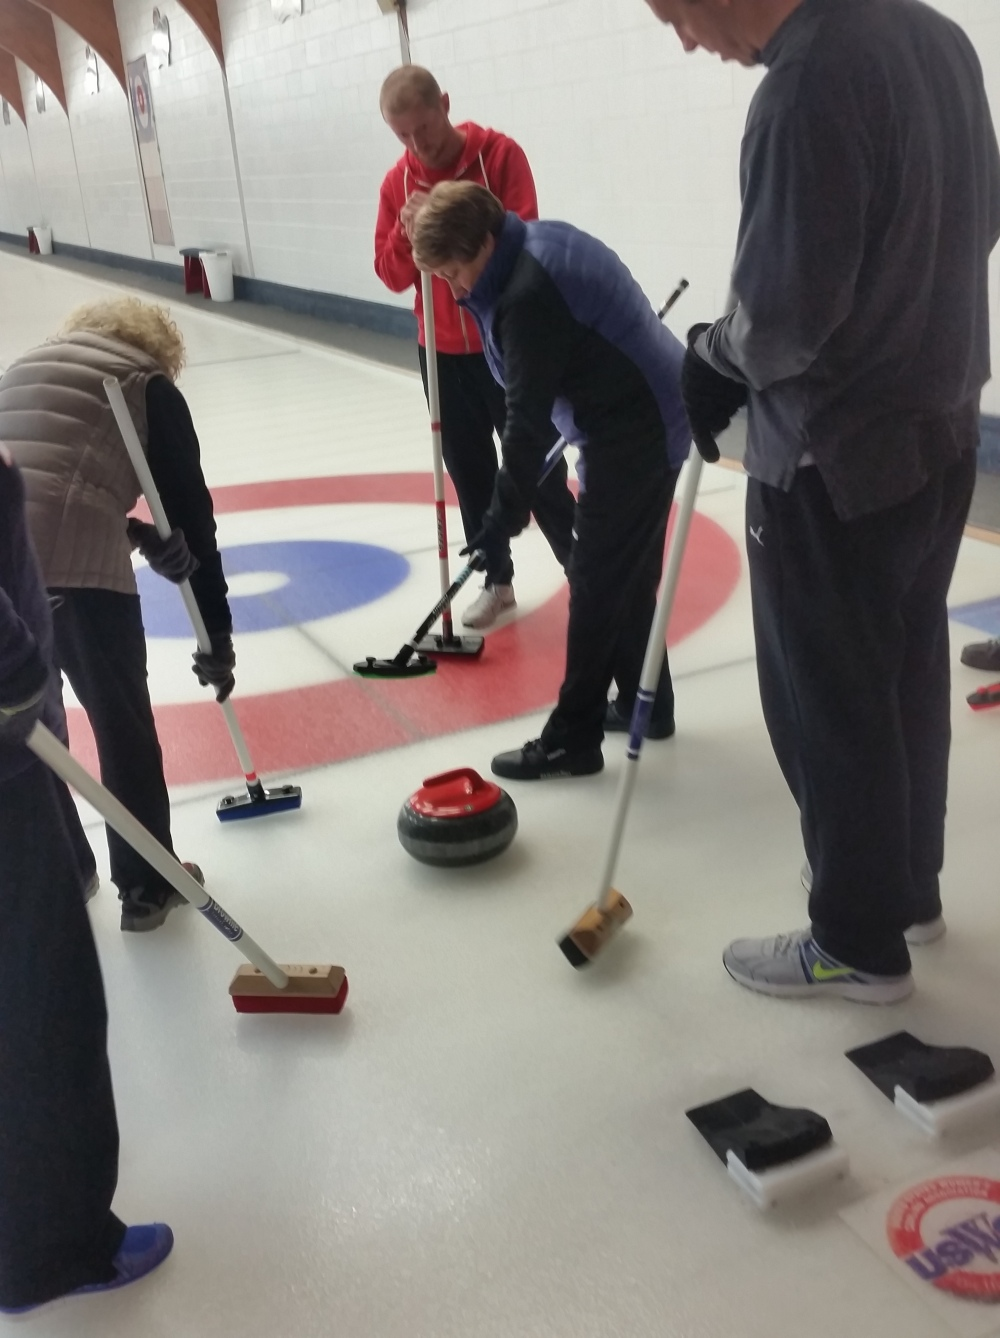 Curling sweep